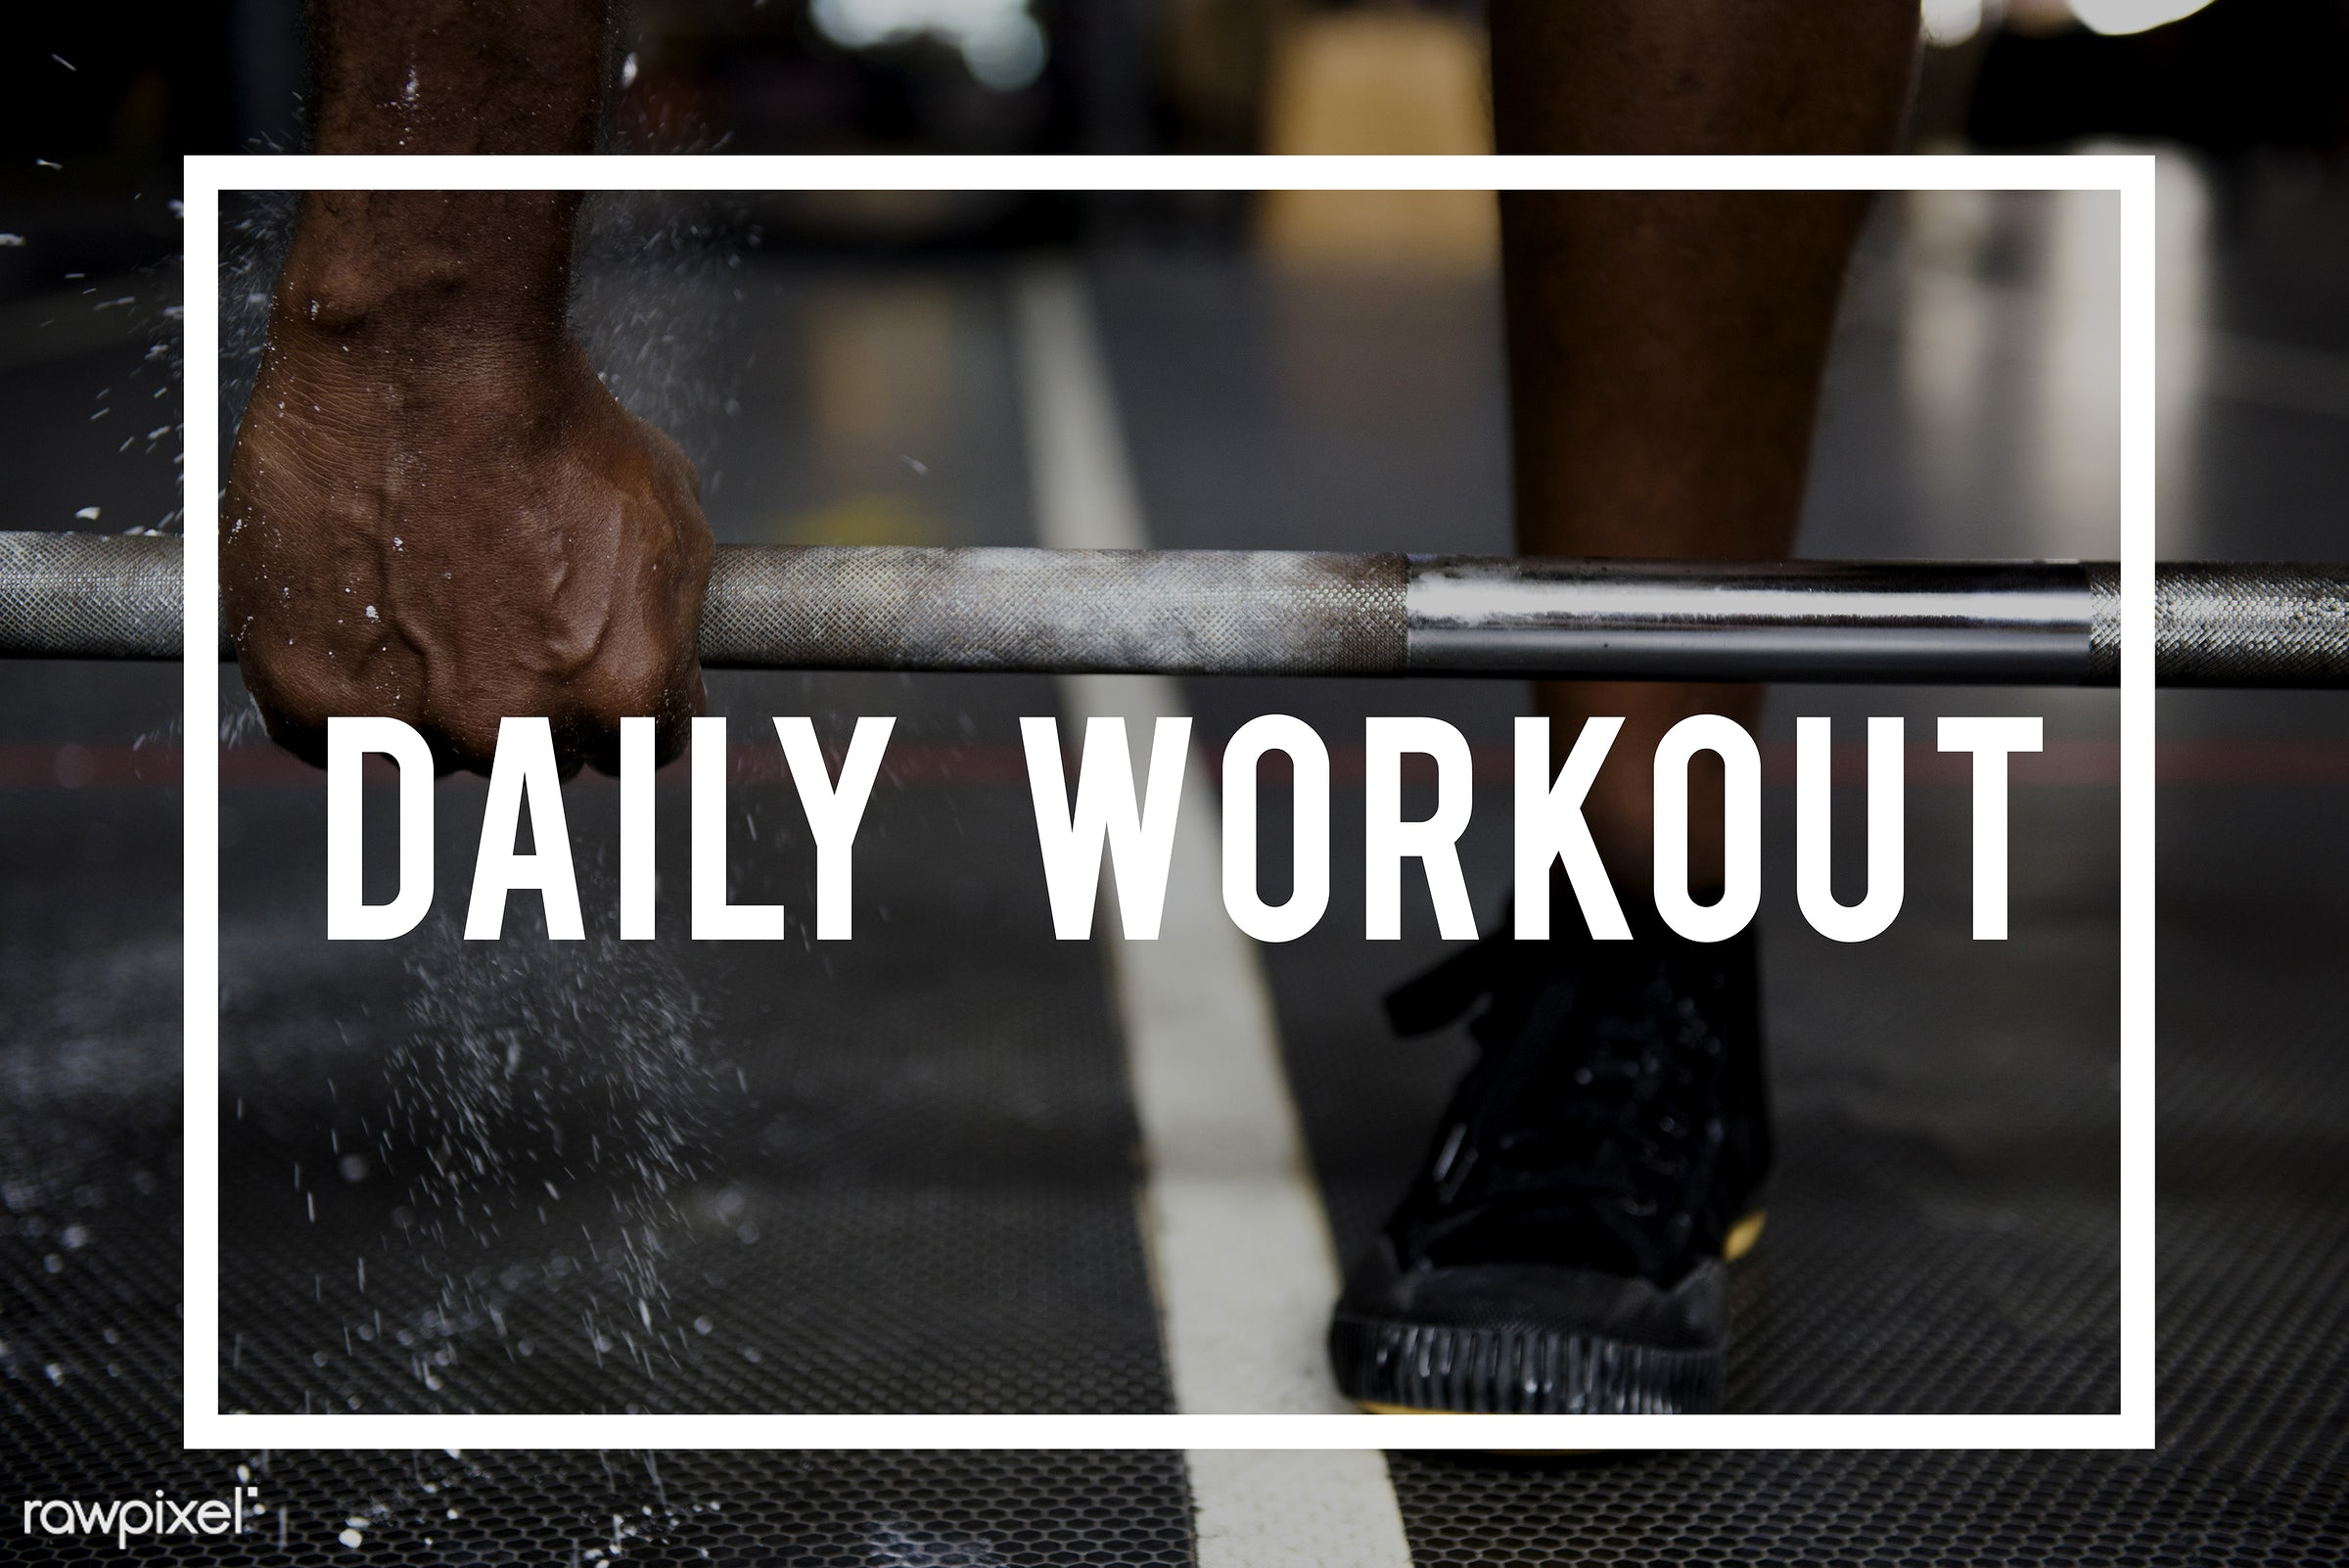 activity, african descent, barbell, black, black people, body, build, can, challenge, daily, do it, exercise, fit, fitness,...